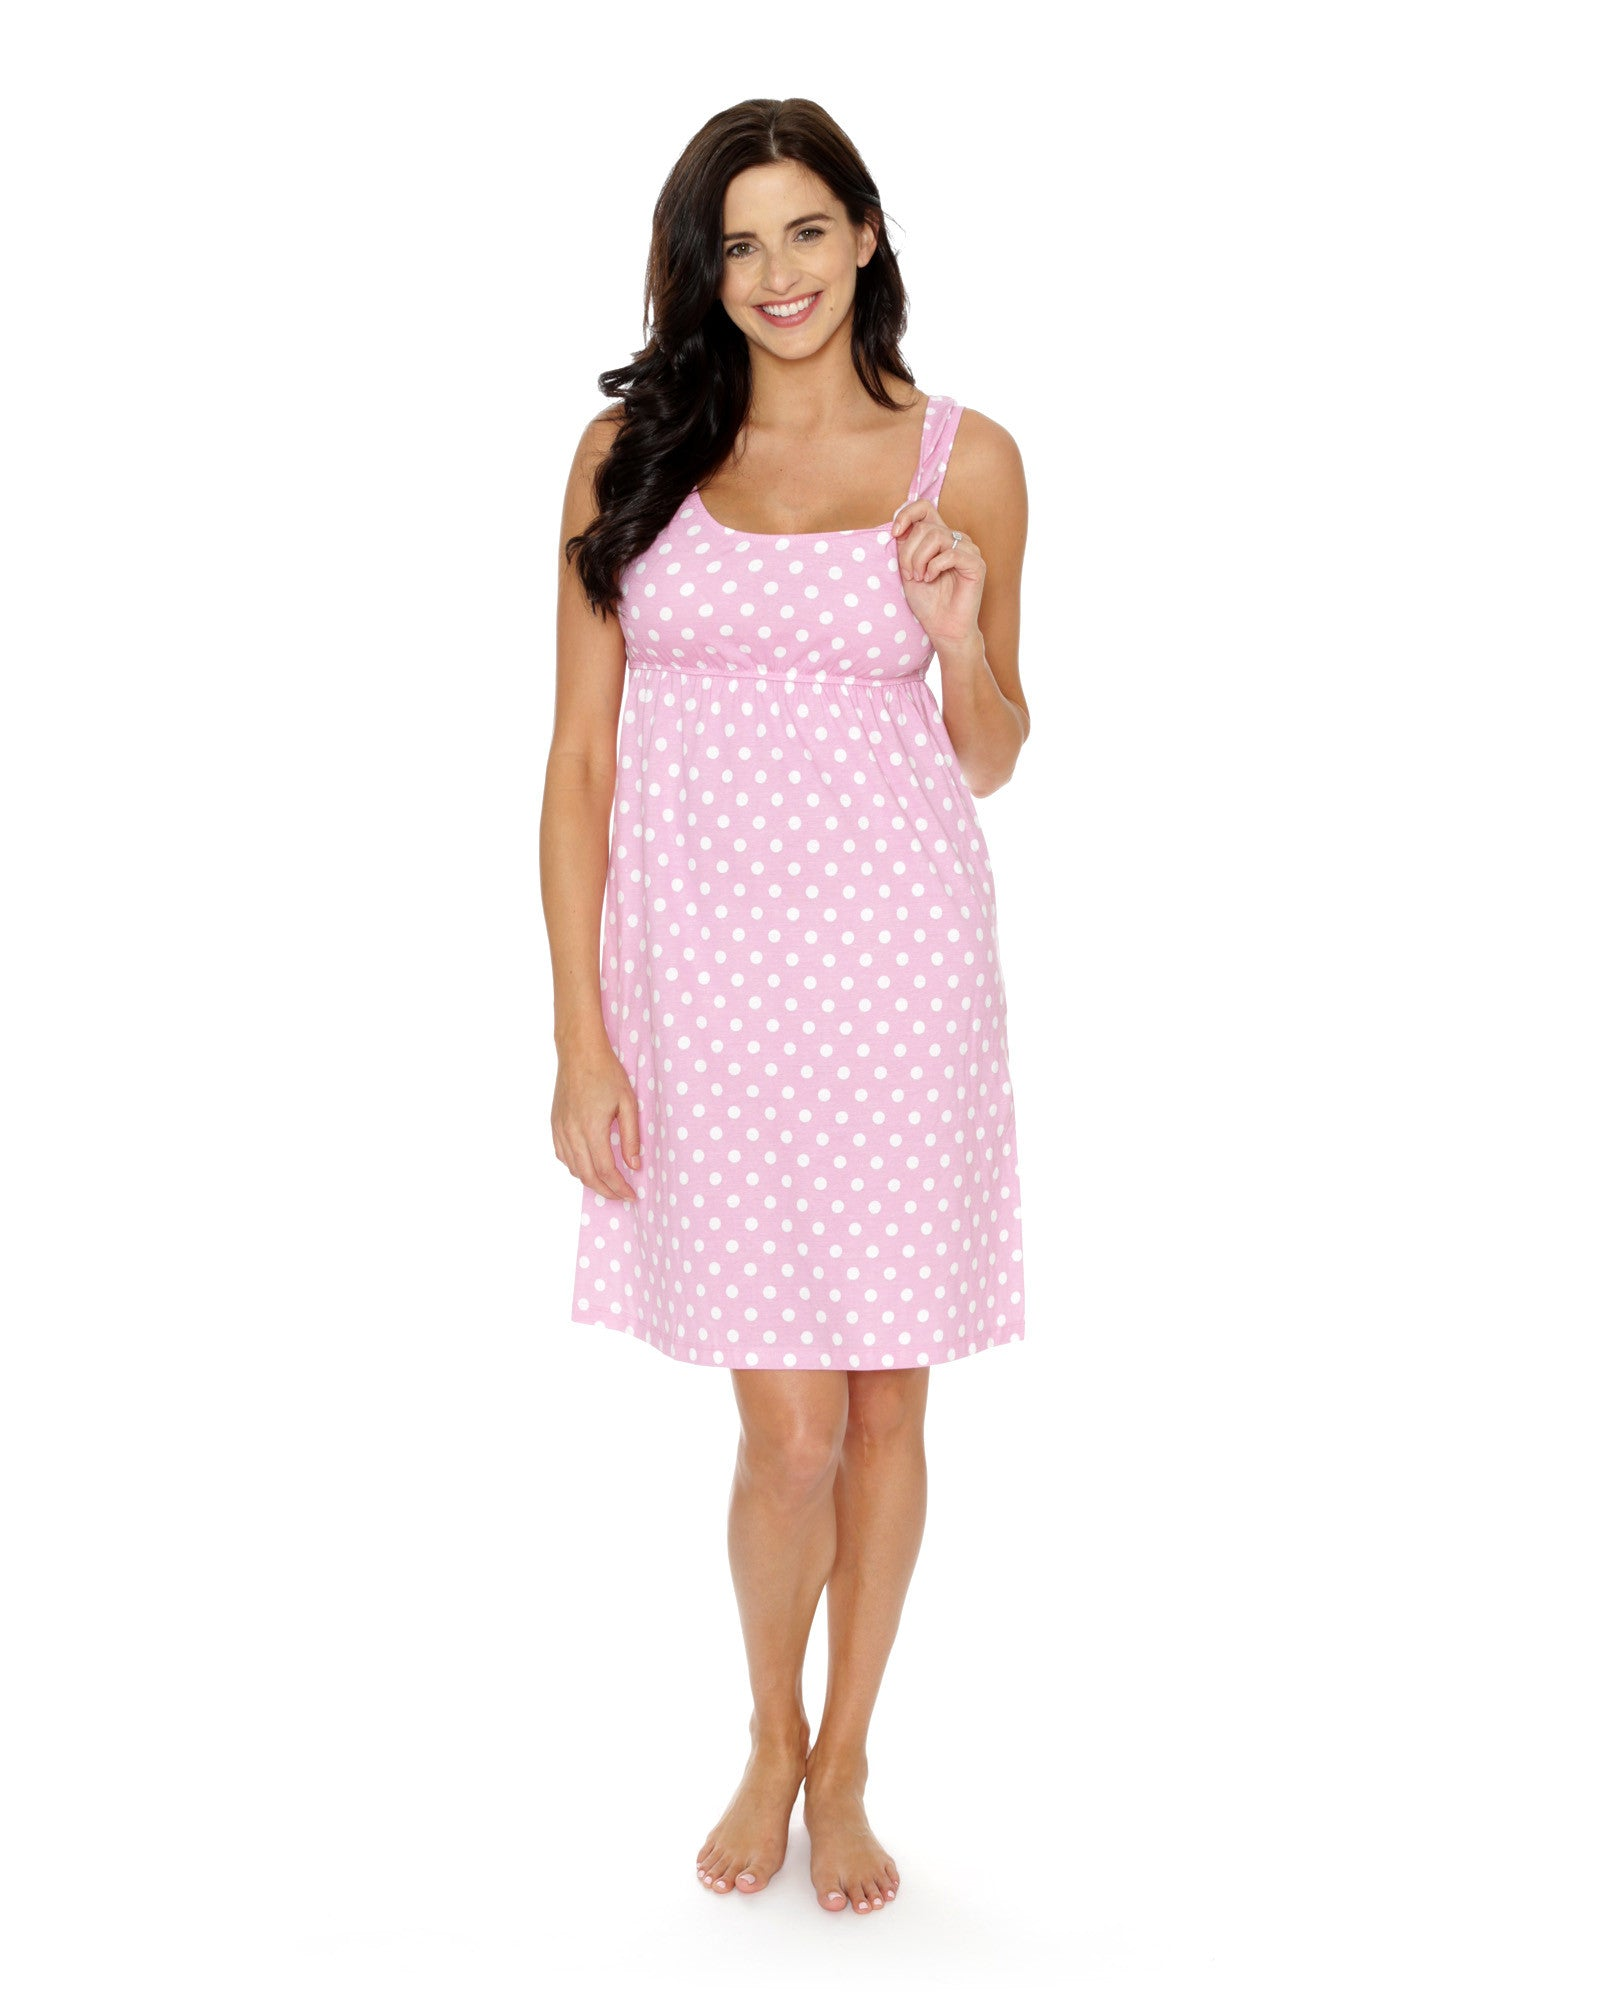 Molly Maternity/Delivery /Nursing Nightgown, Robe & Baby Receiving ...